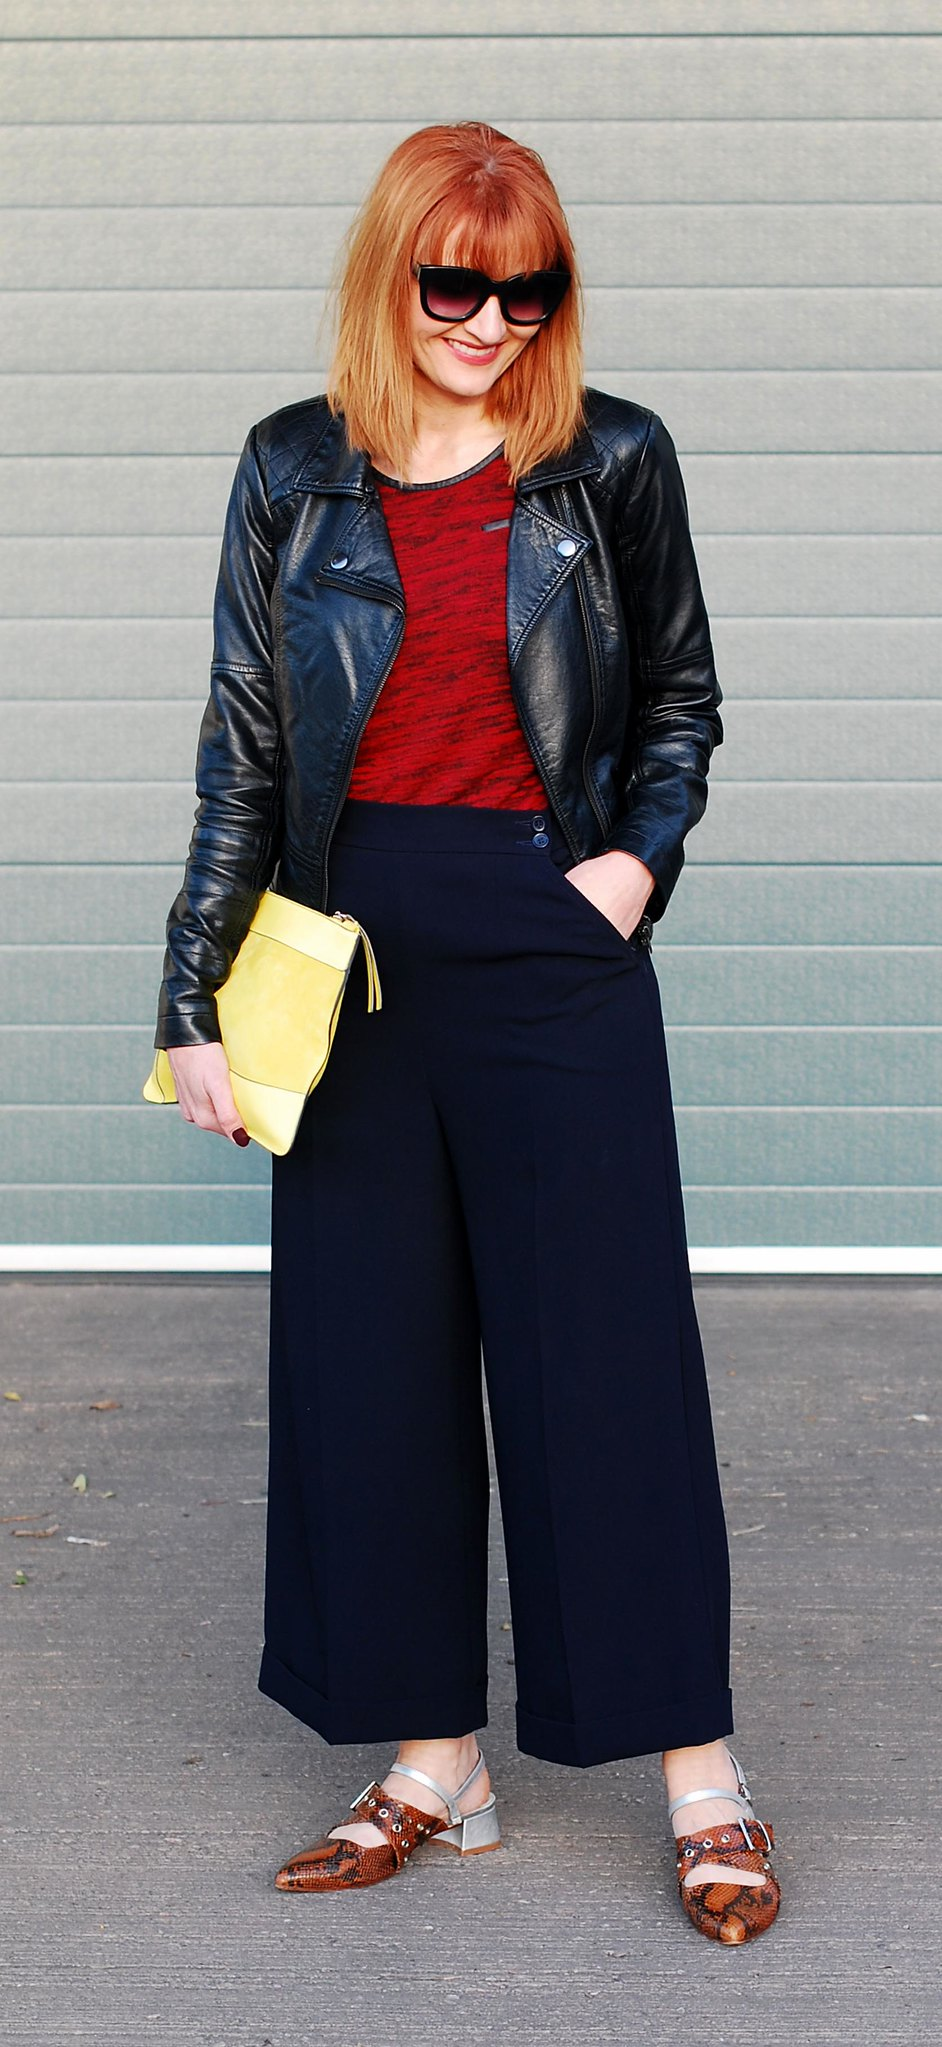 Corporate rock chic look: Black biker jacket  red textured t-shirt  navy culottes  Finery pointed strappy snakeskin buckle shoes  neon yellow suede clucth | Not Dressed As Lamb, over 40 style